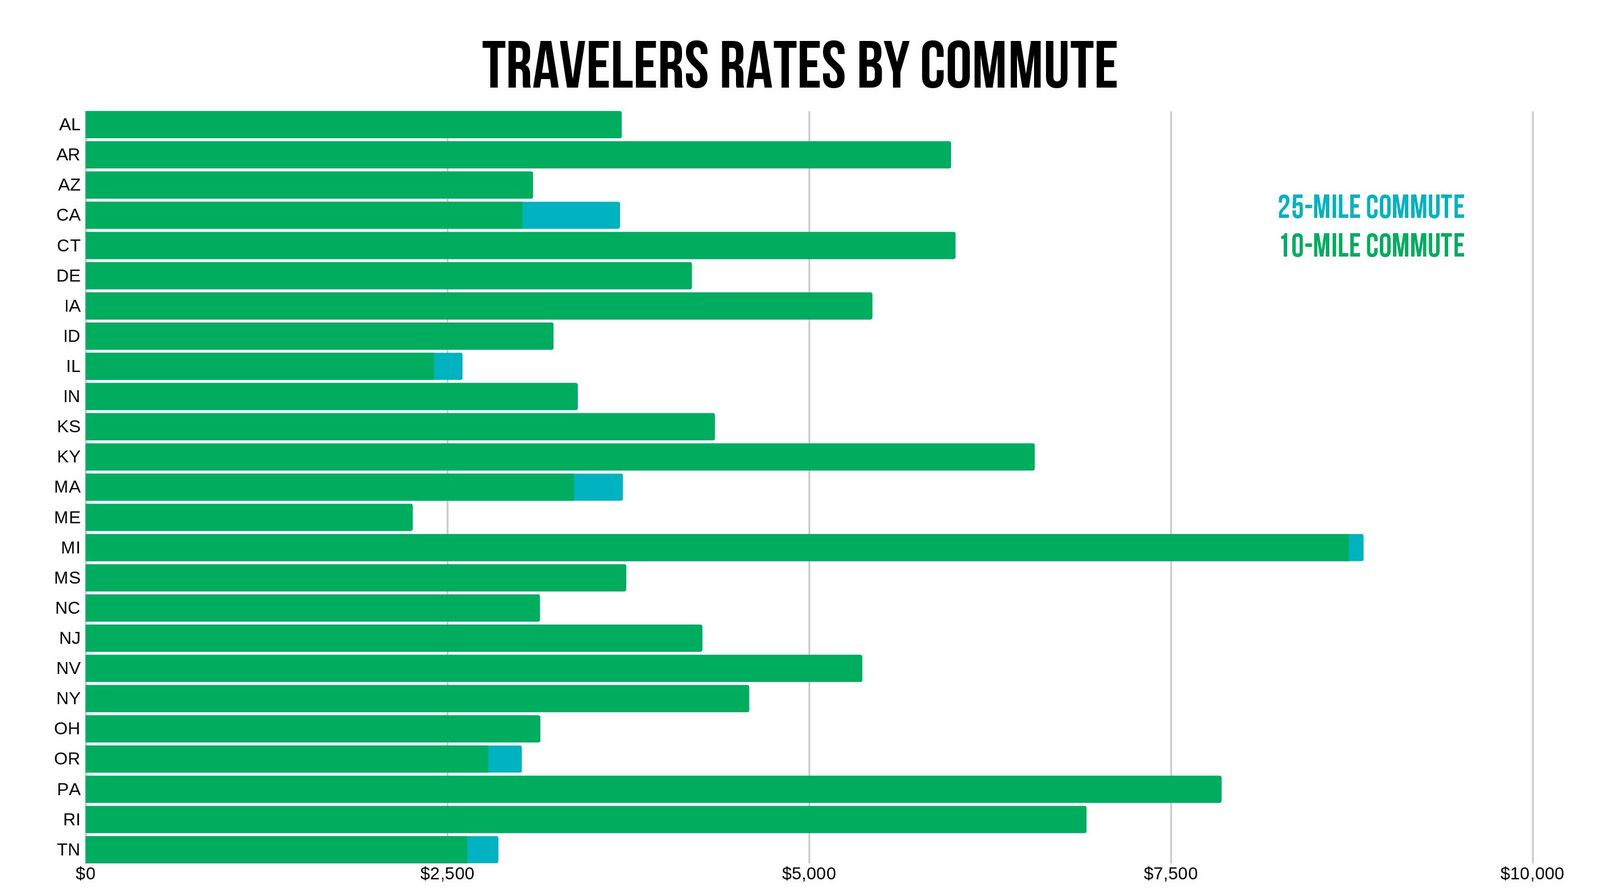 Travelers rates by commute by state